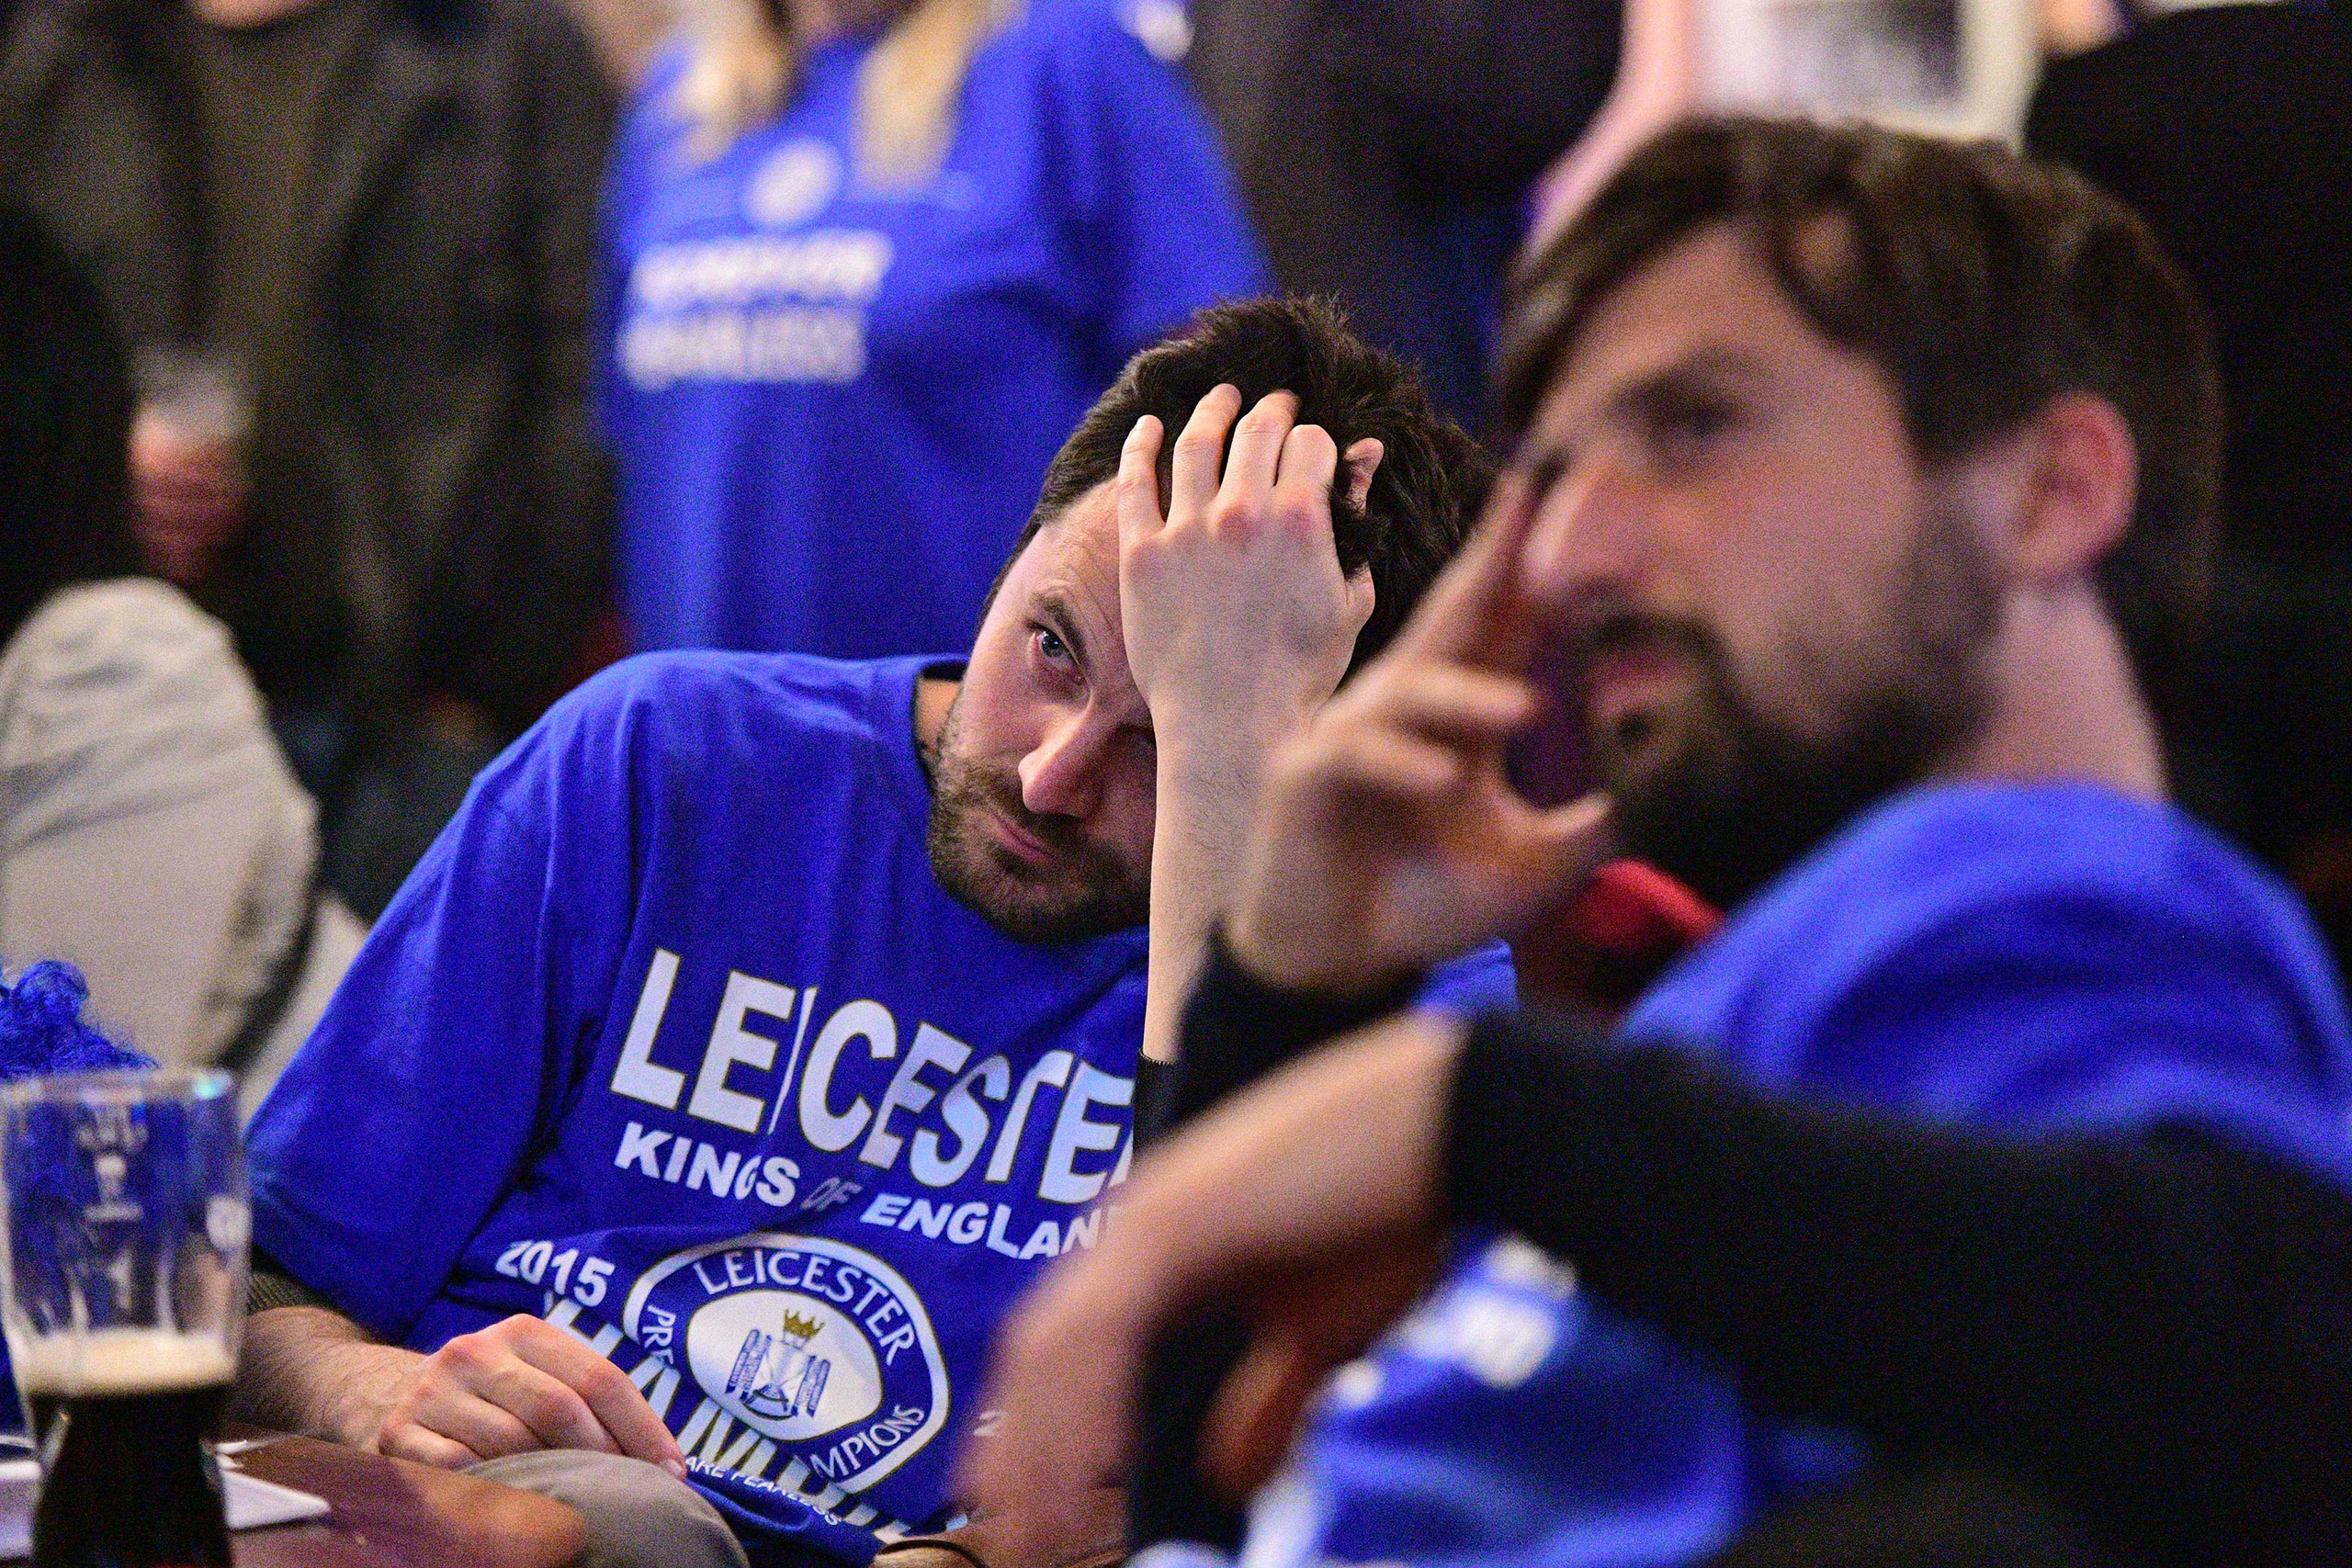 A Leicester City fan reacts as he watches after Tottenham scored their second goal in the English Premier League football match between Chelsea and Tottenham Hotspur in a pub in central Leicester, eastern England, on May 2, 2016.